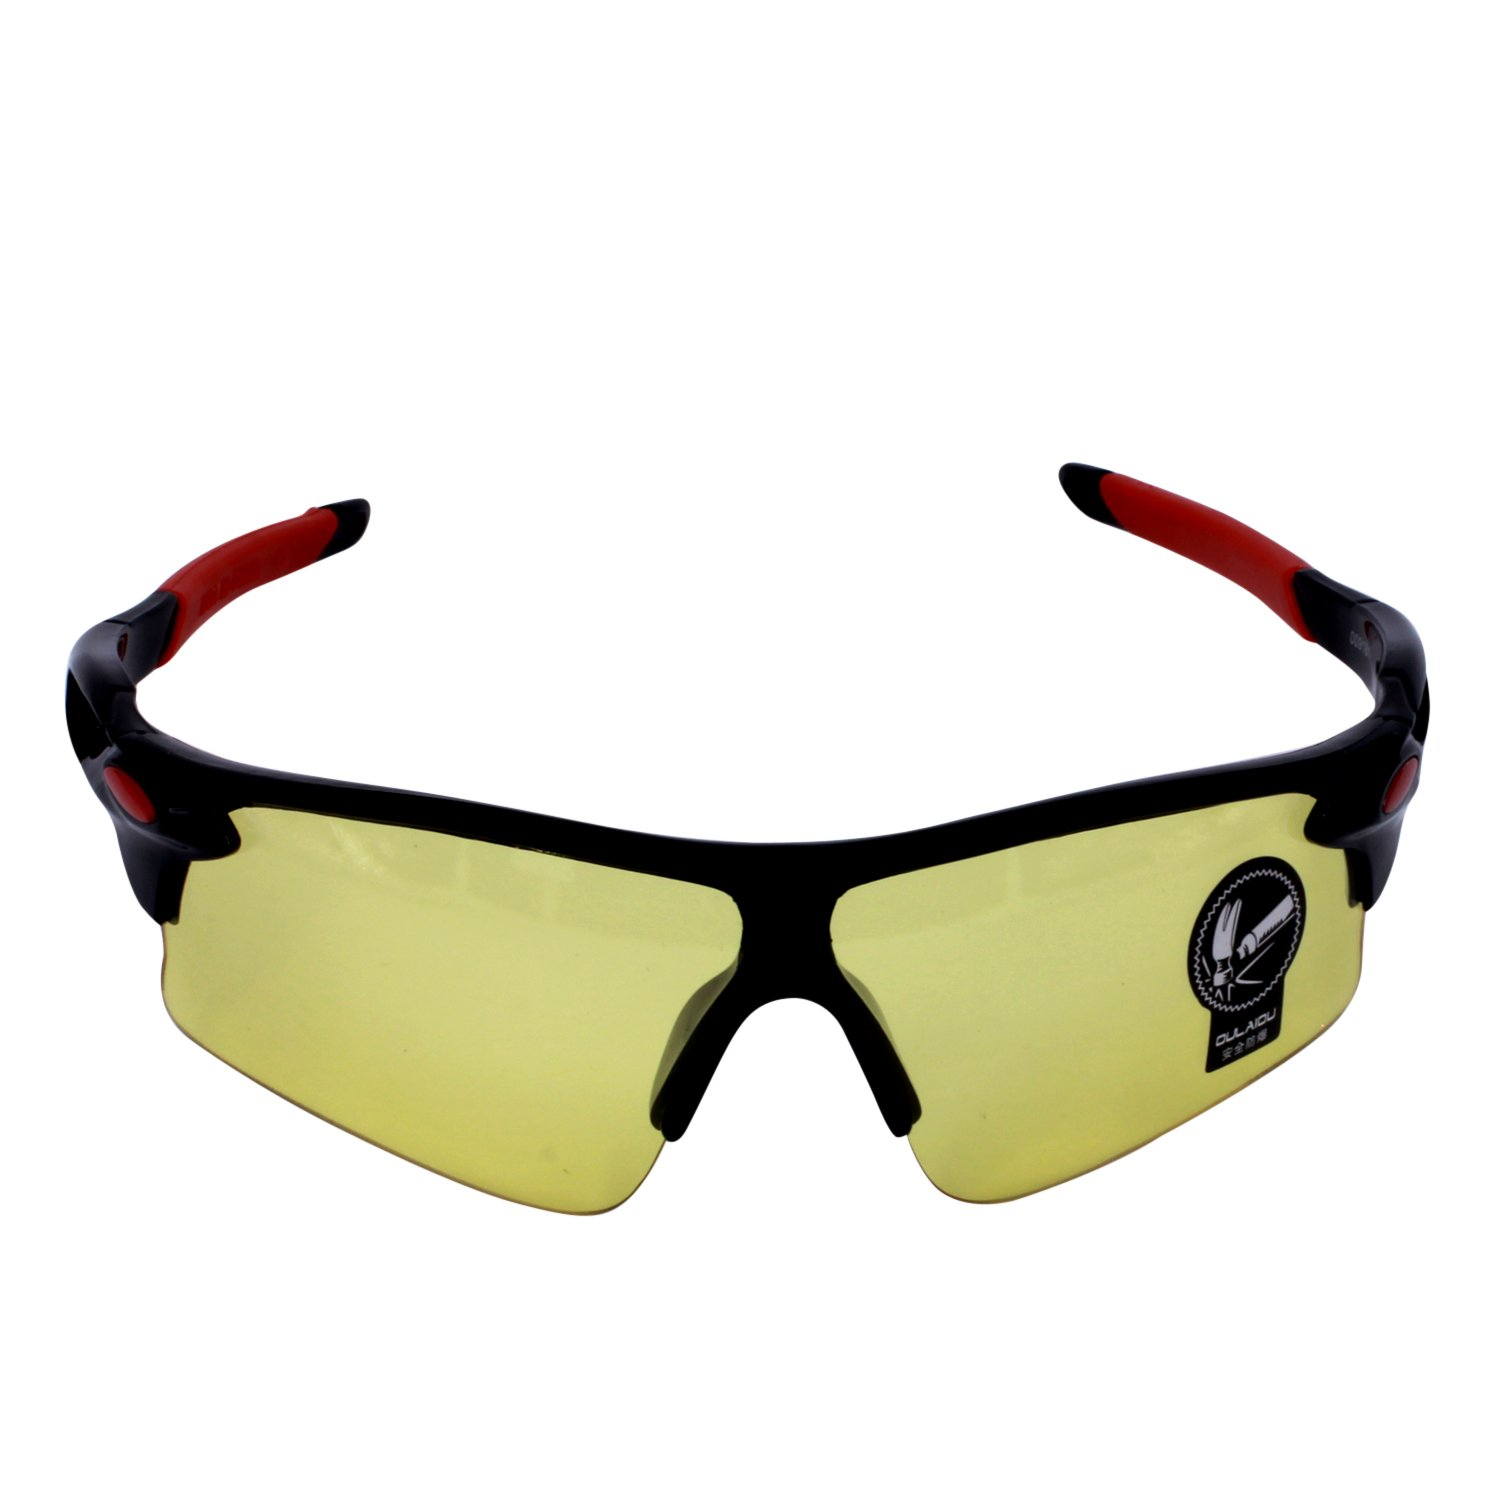 Polarized Sports Sunglasses 100% UV Protection Outdoor Cycling Sunglasses for Driving, Running, Fishing, Golf and Sports(black(night vision) yellow Lens)